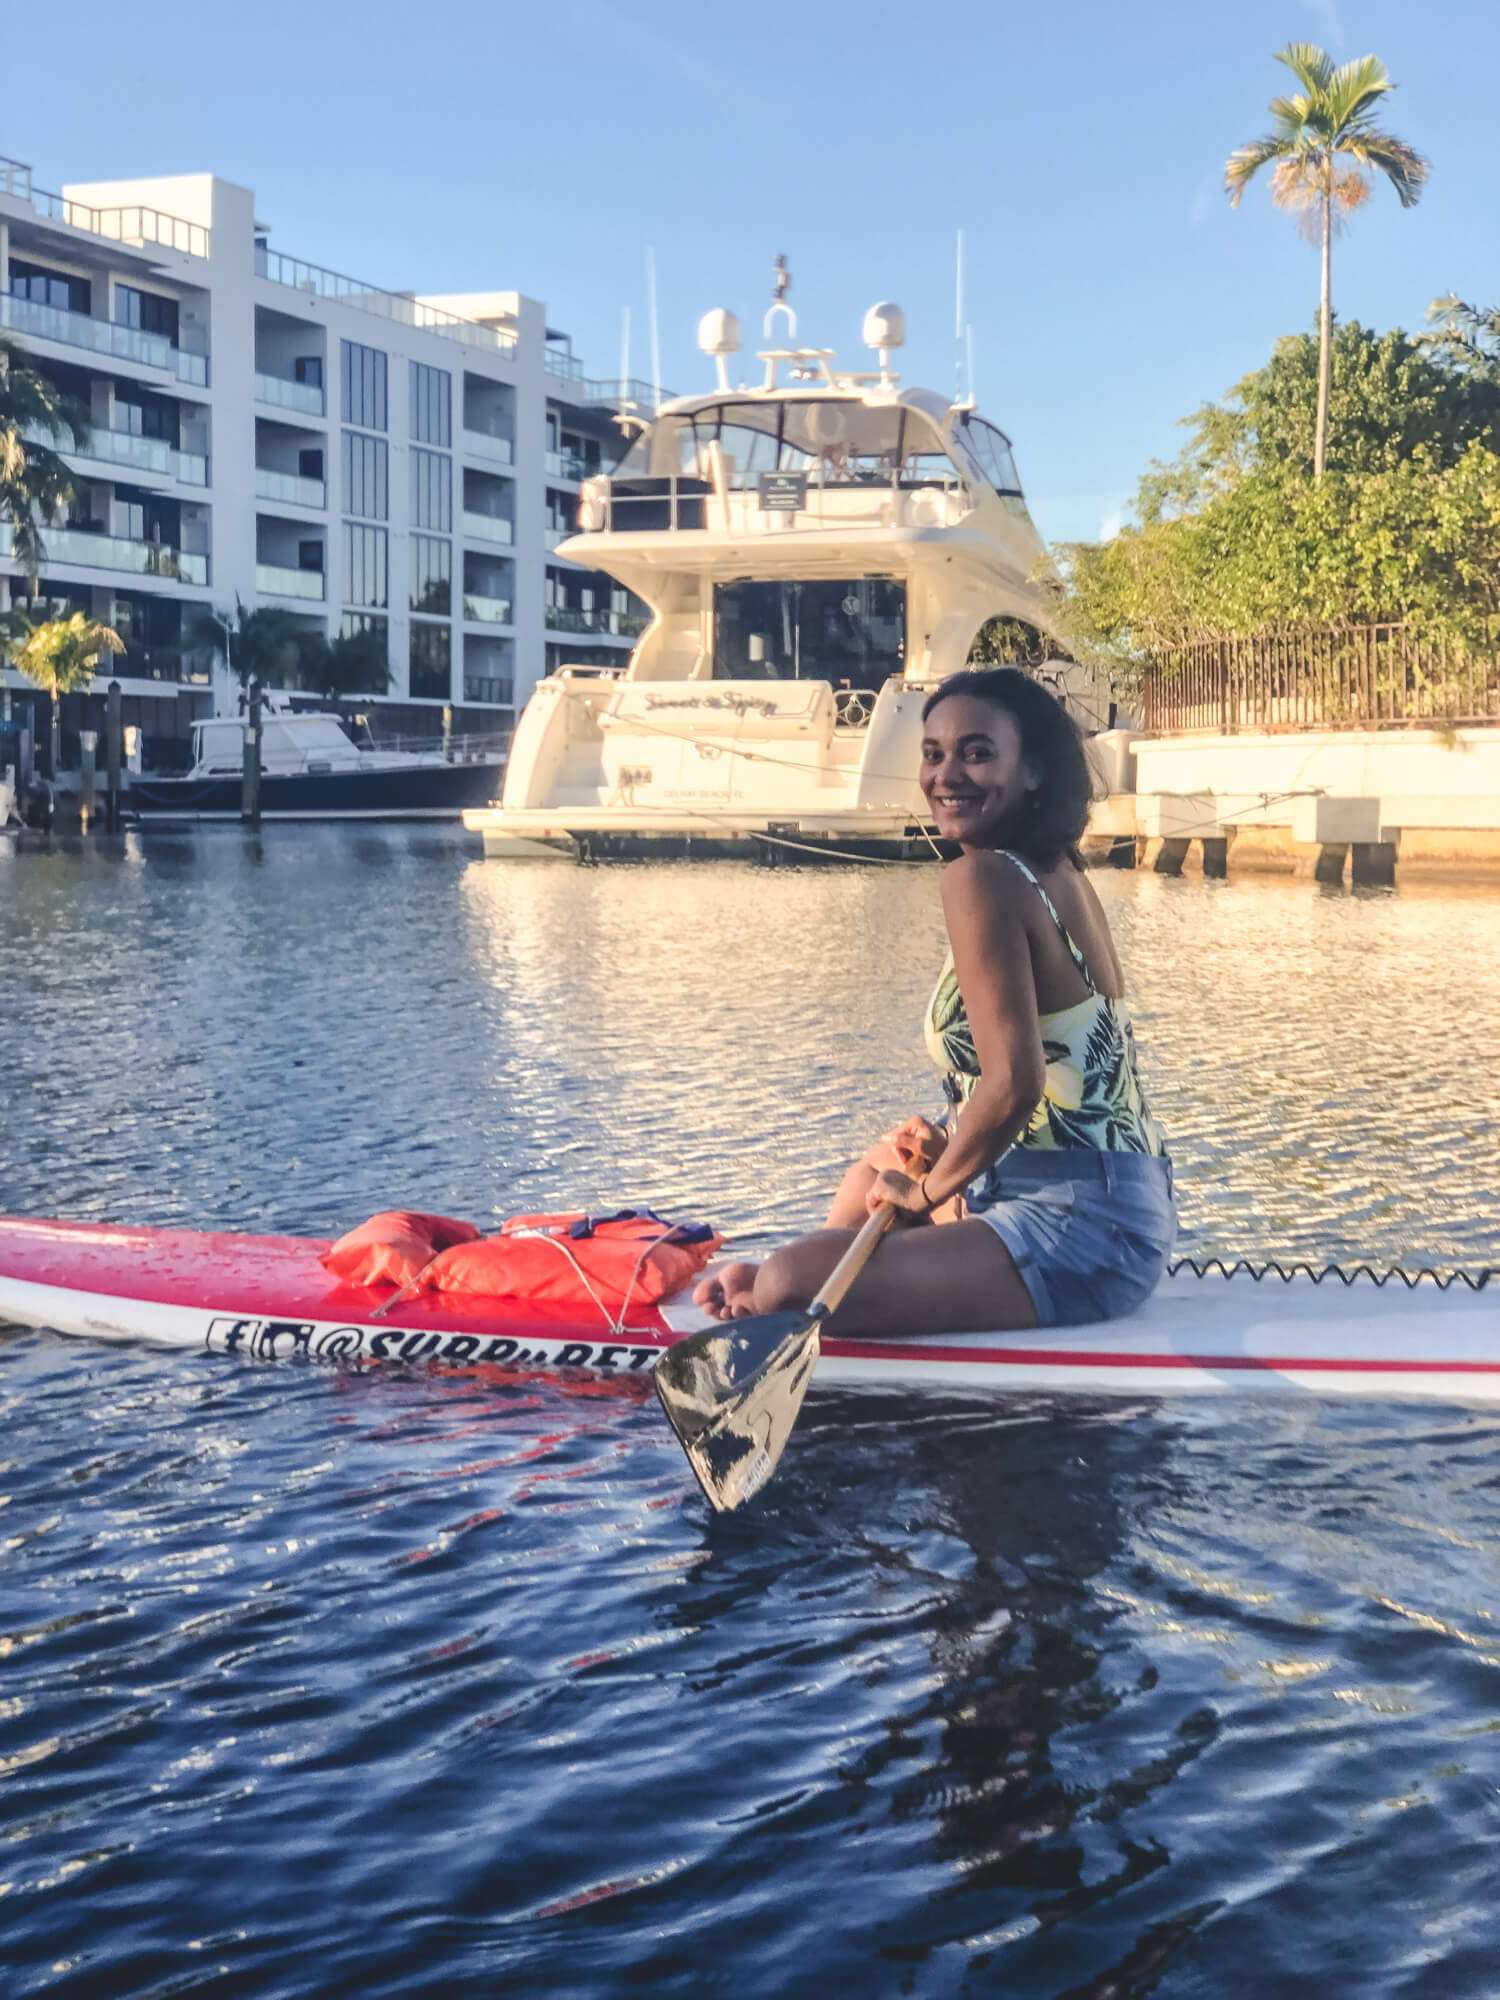 SUP Fort Lauderdale paddle board rentals - ochristine